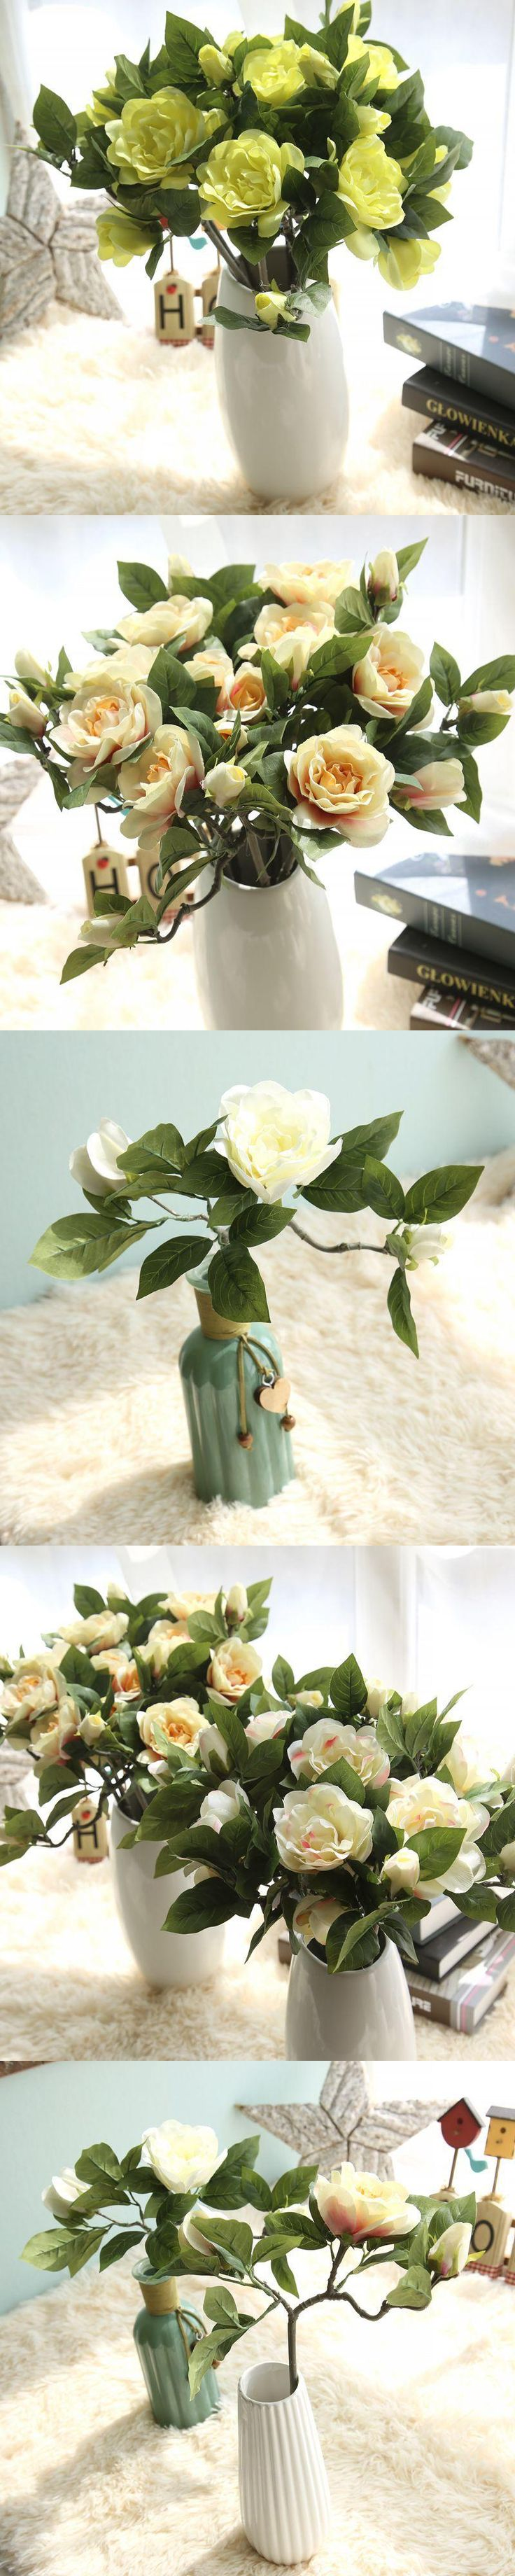 1 Branch Artificial Gardenias Flowers For Home Wedding Decoration Cheap Artificial Flower For Decoration Silk Flowers Gardenia